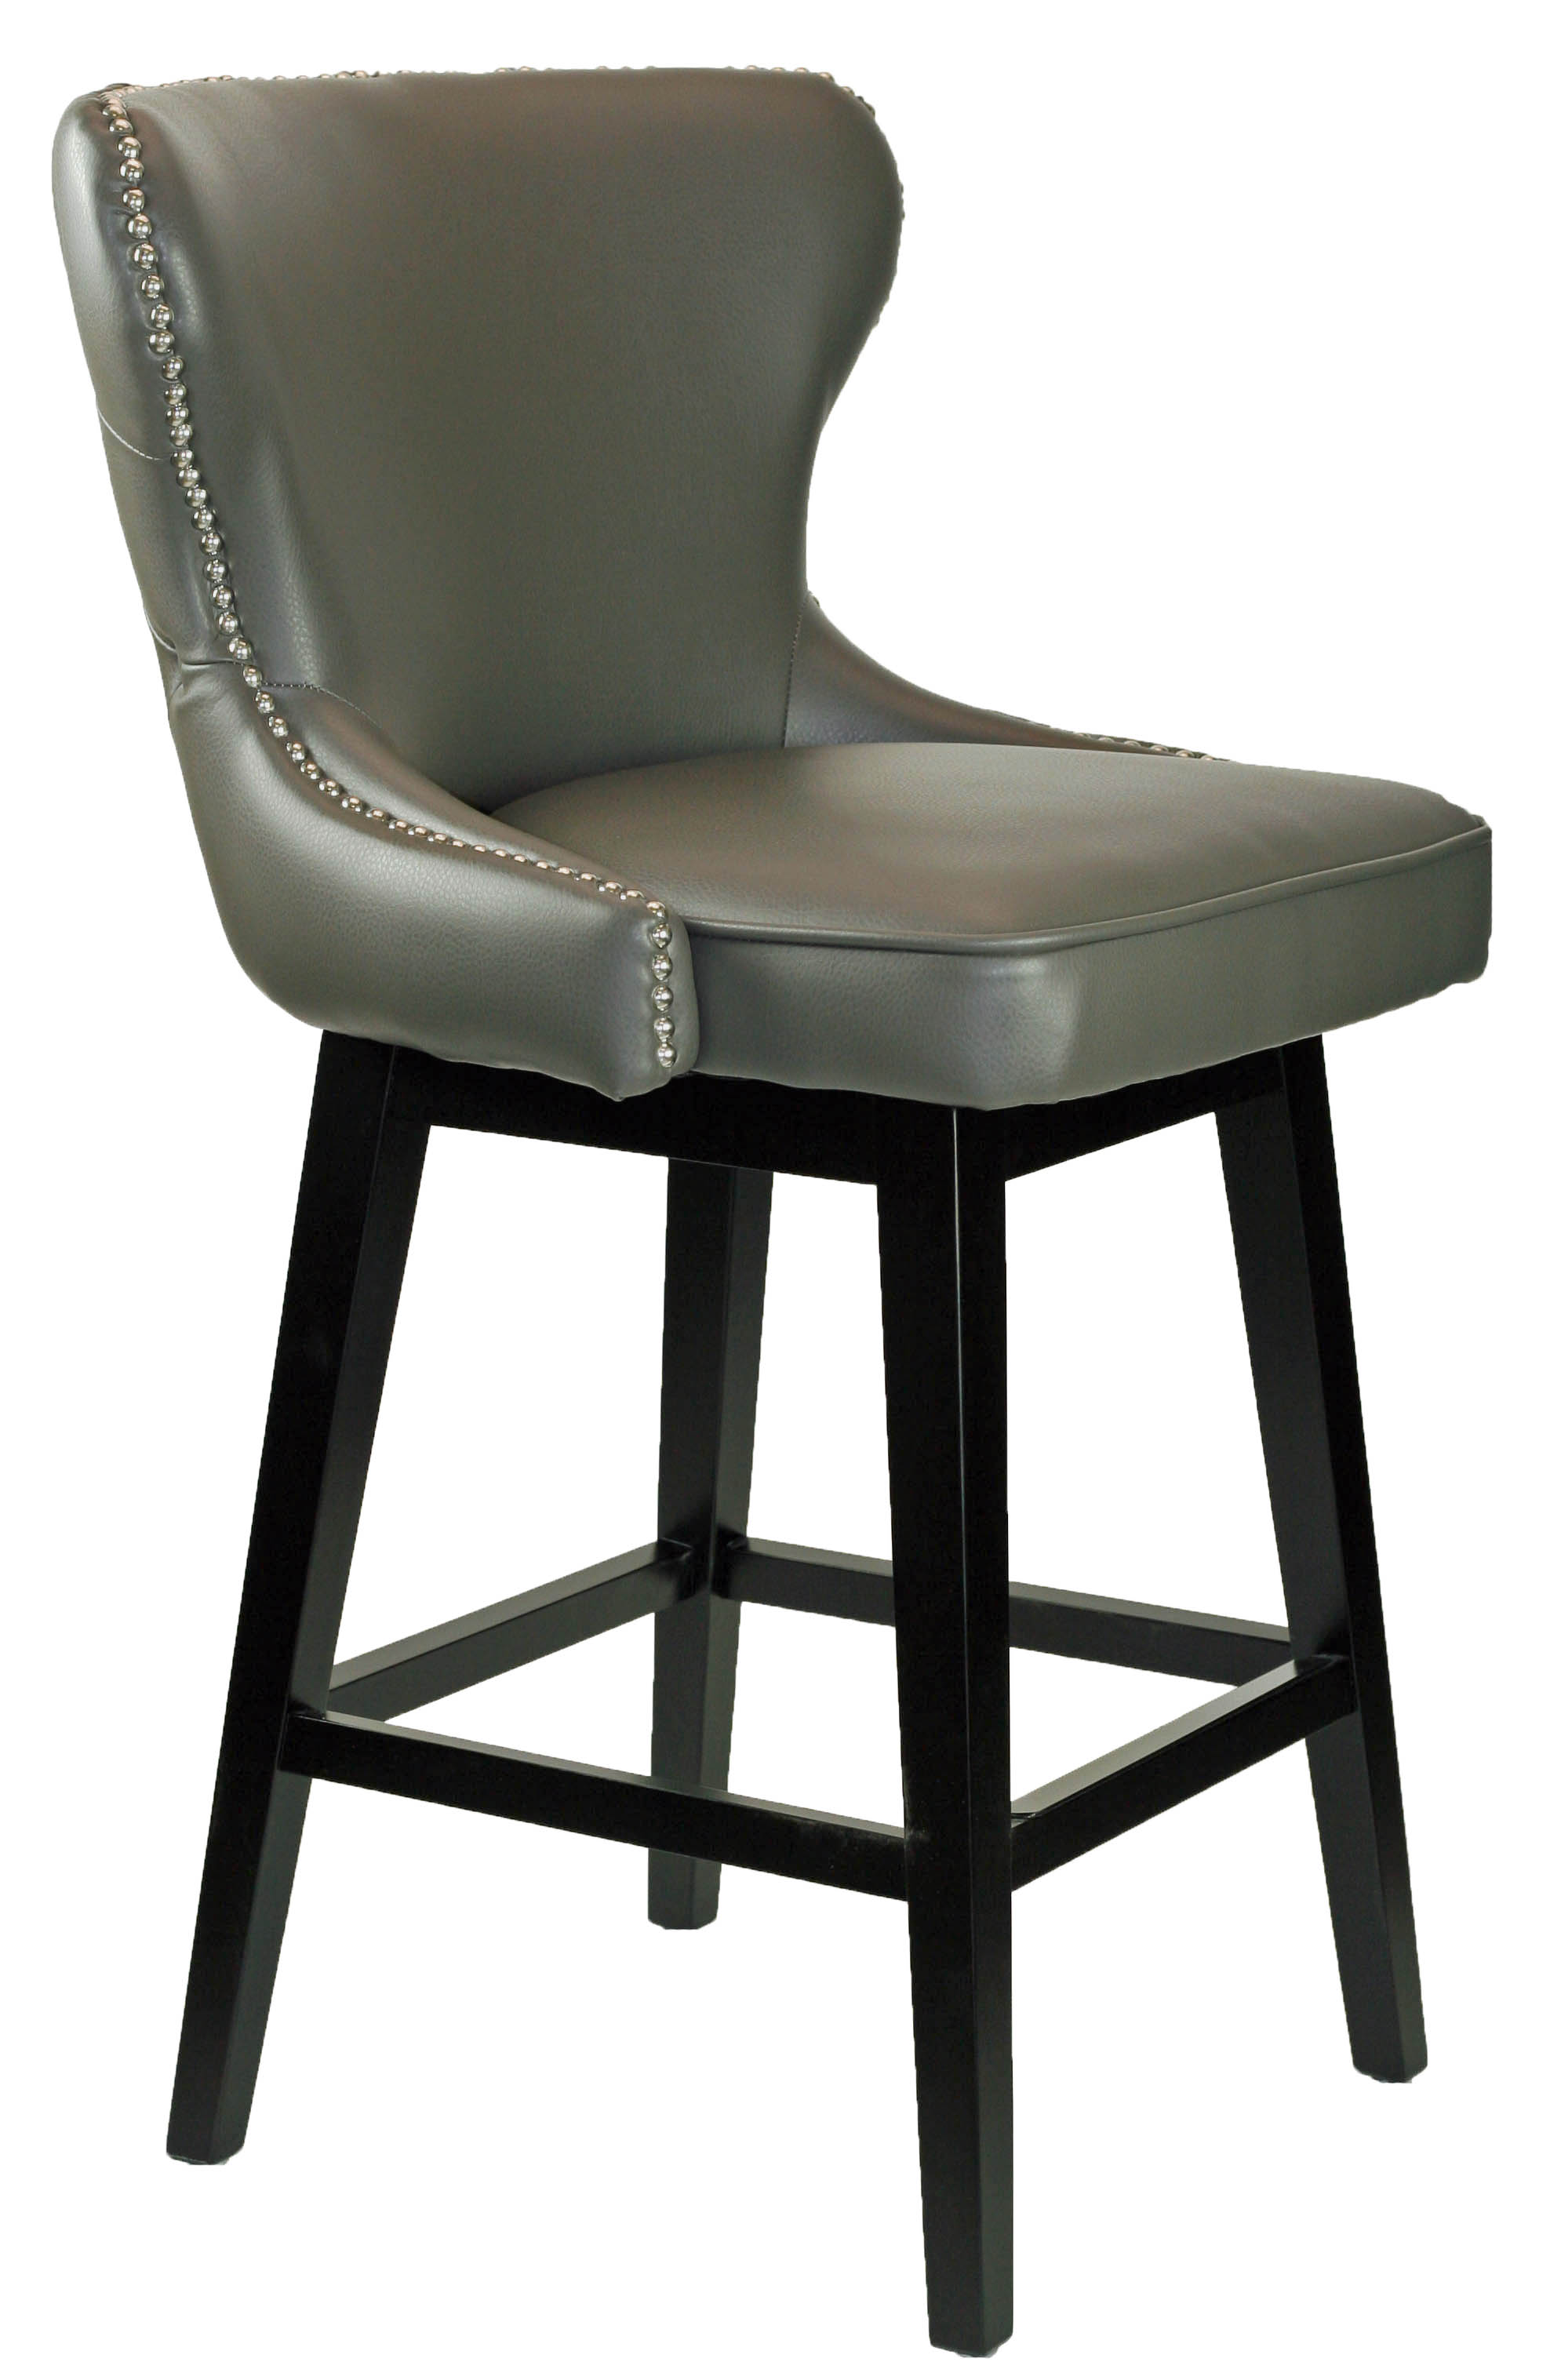 Kitchen Counter Swivel Chairs Bar Stools And Kitchen Counter Stools R 8707 Grey Leather